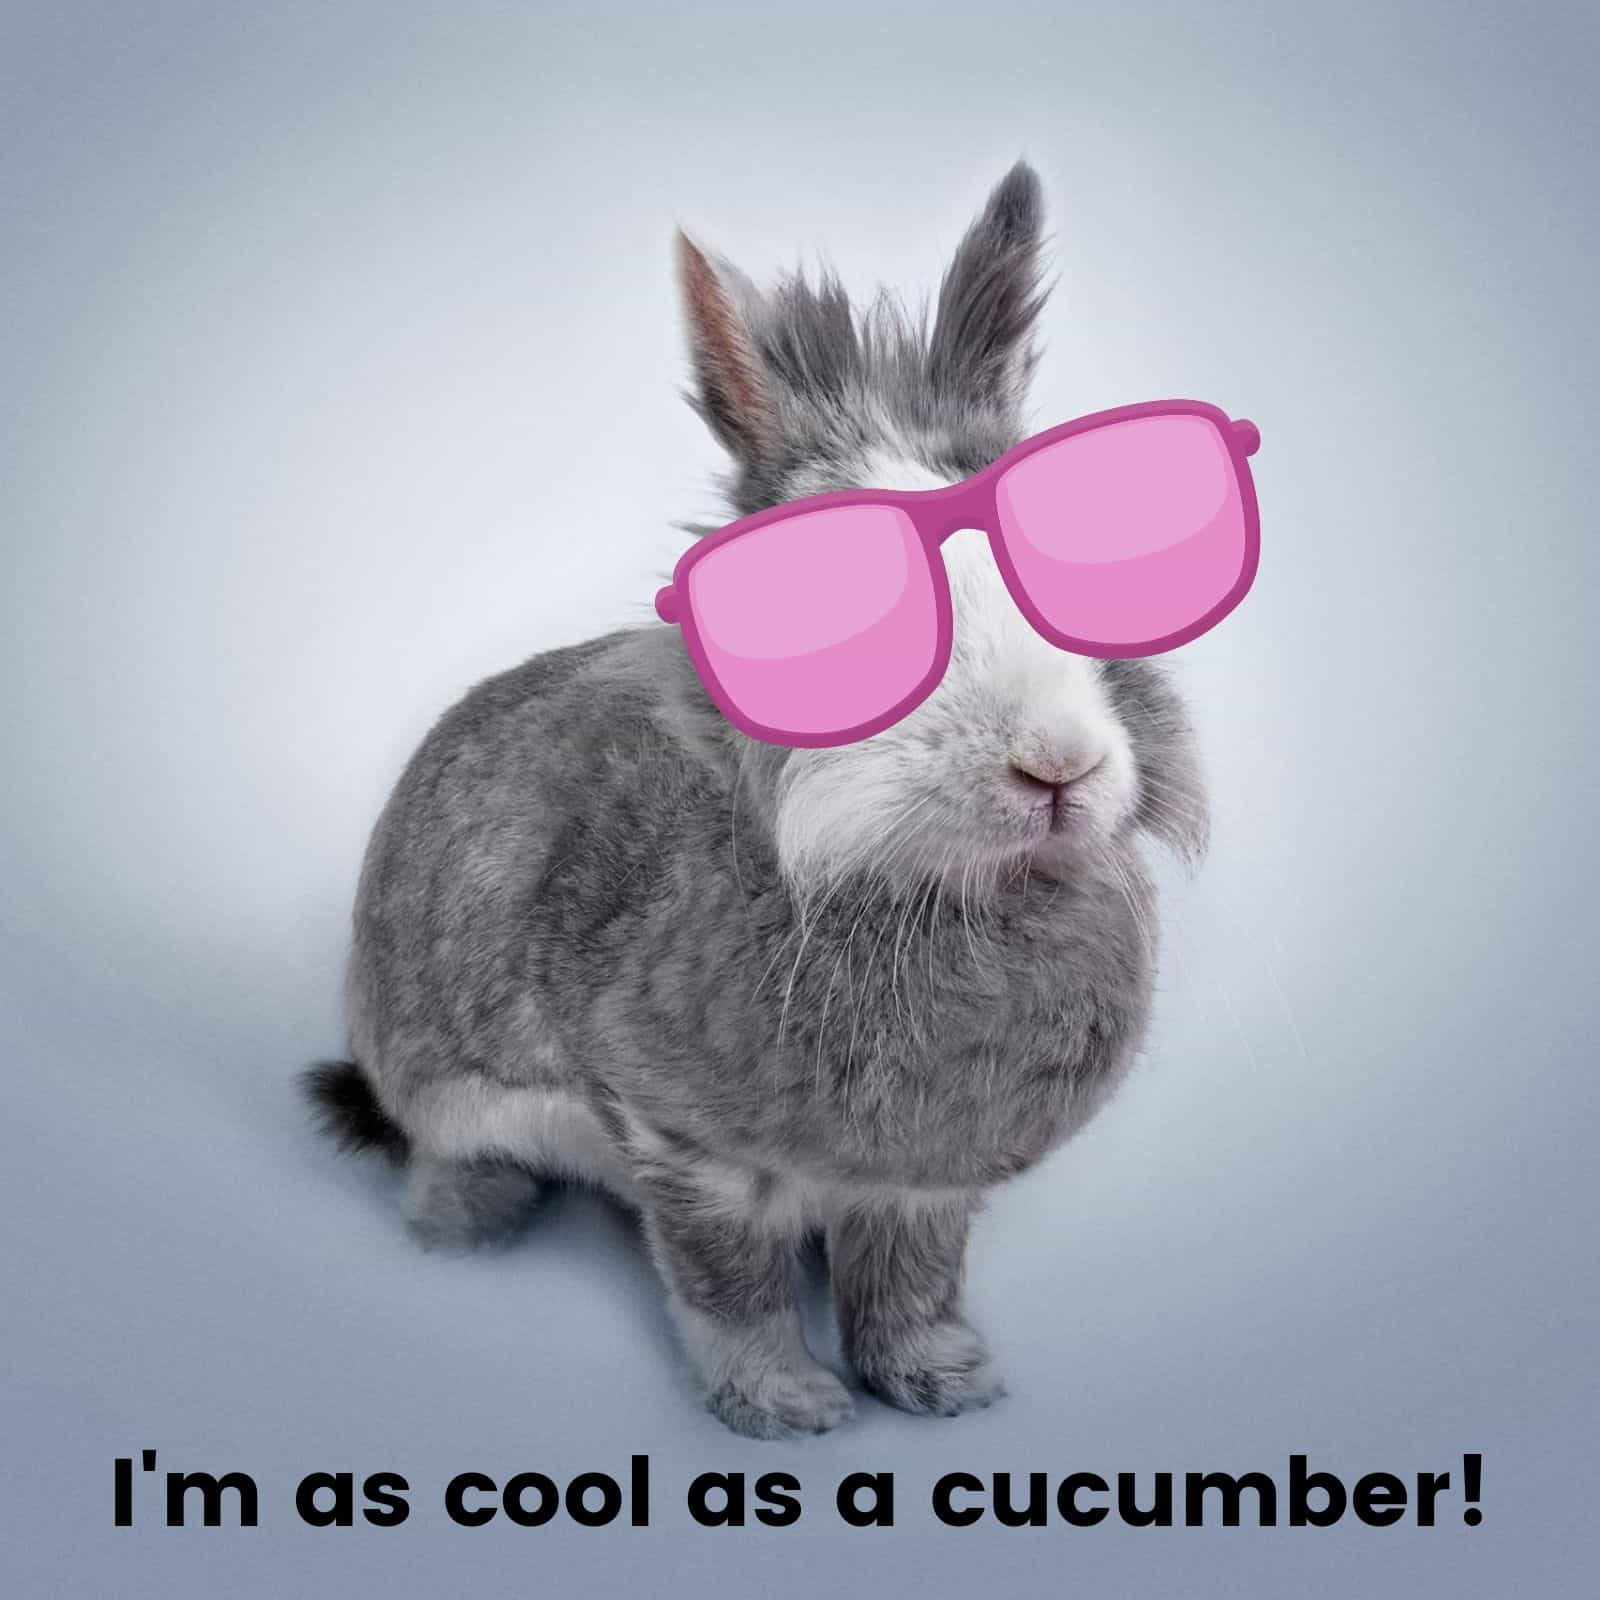 I'm as cool as a cucumber!